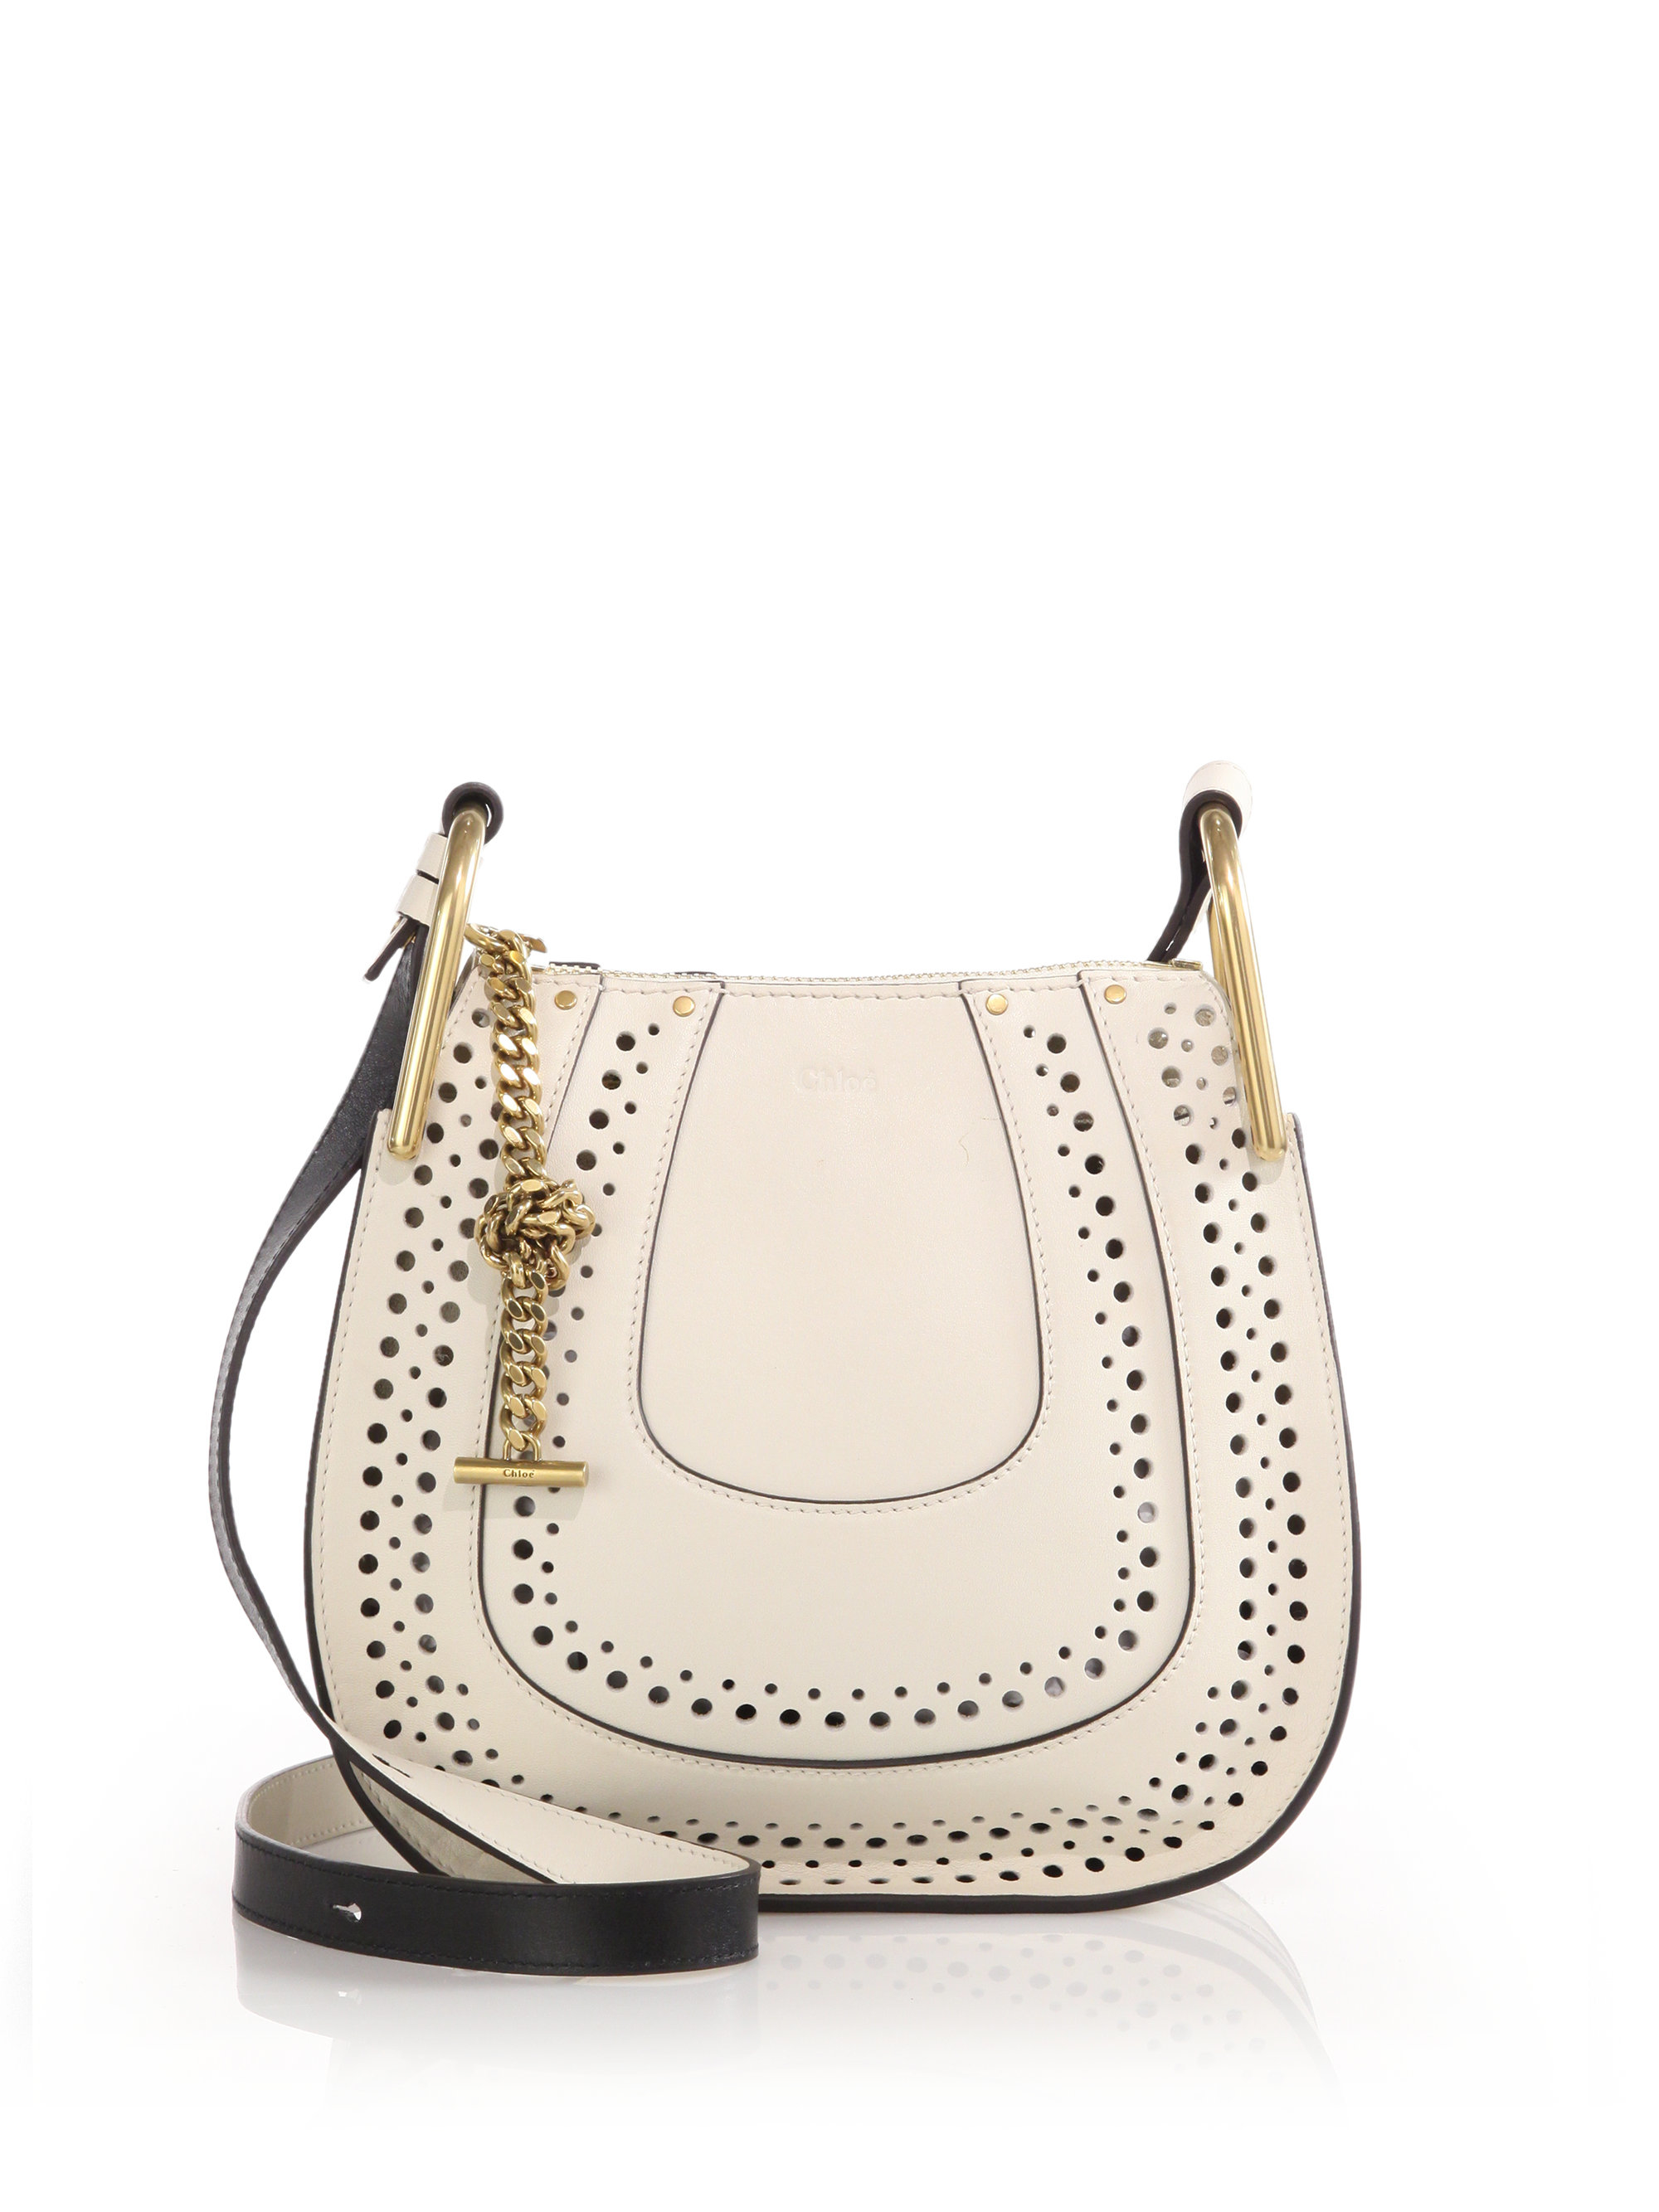 how to spot a fake chloe bag - Chlo�� Hayley Small Perforated Leather Crossbody Bag in White | Lyst